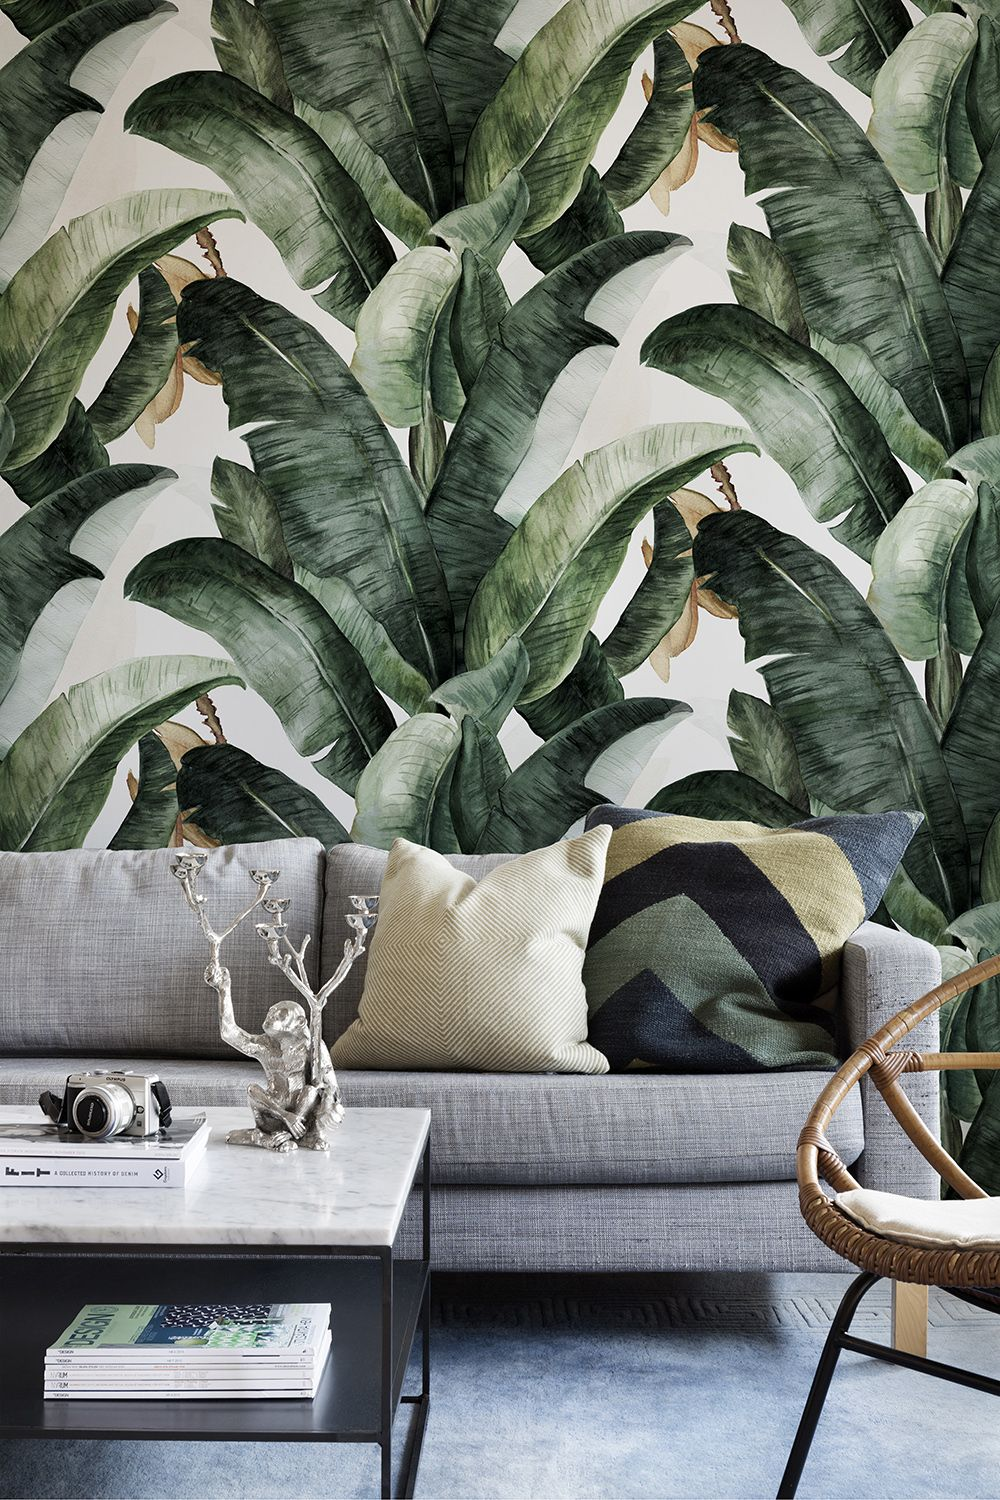 Best Lemon Botany Banana Blog Tropical Home Decor Wall Decor 400 x 300